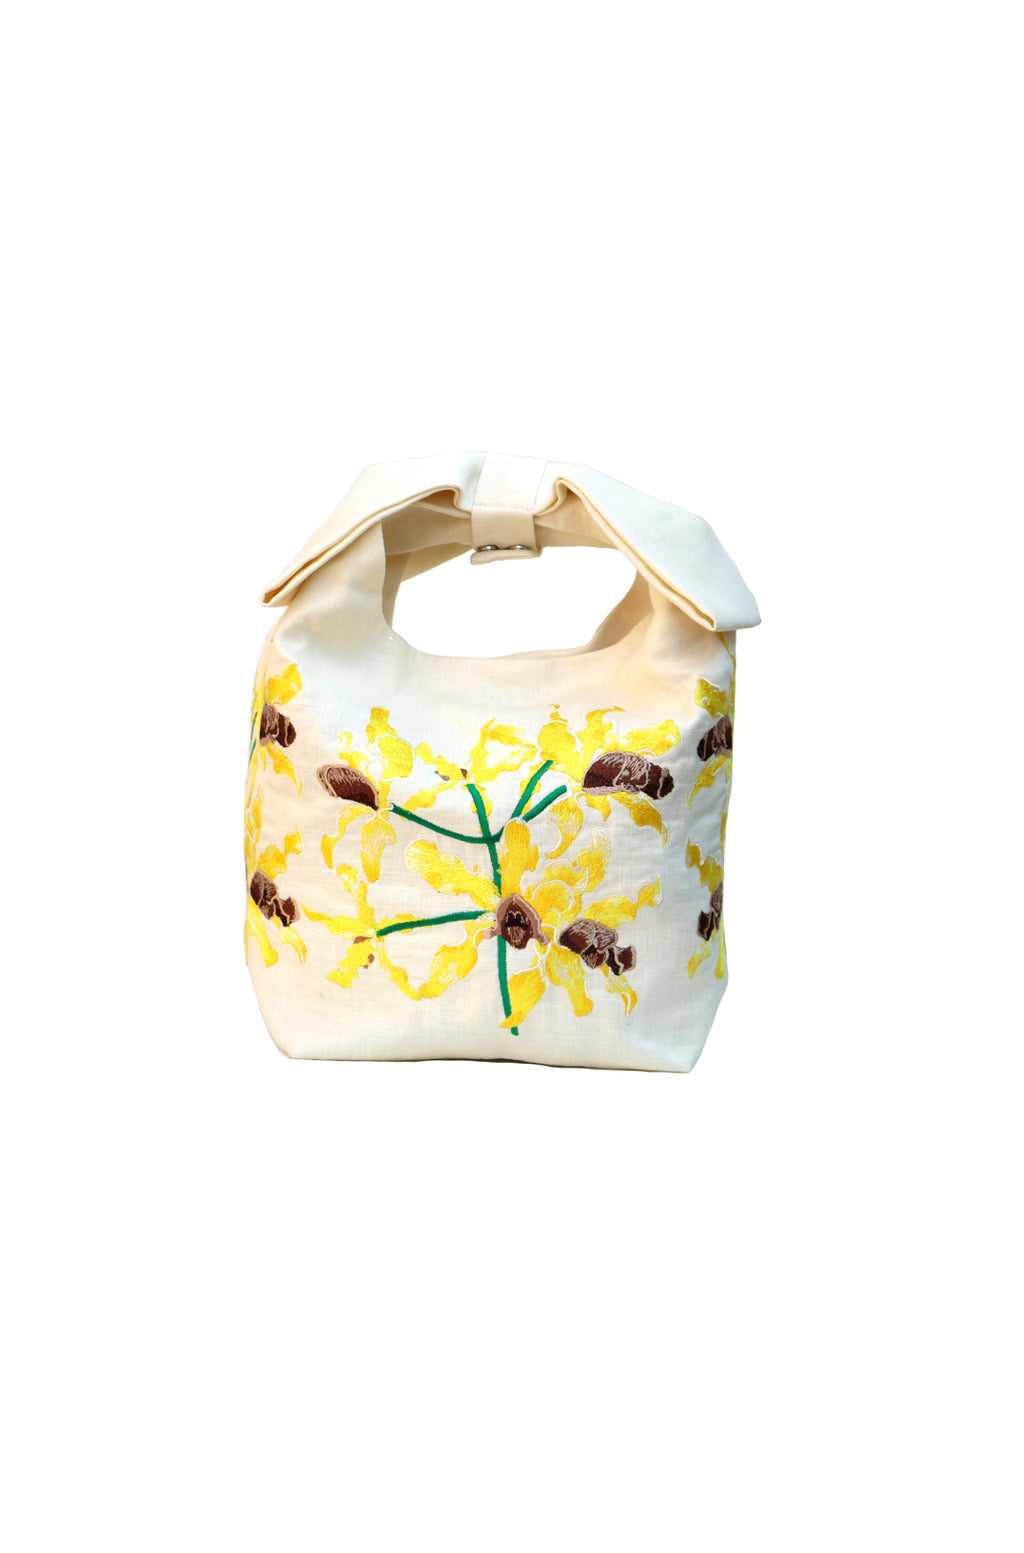 Fanm Mon Lakou Cream Yellow Wild Orchid Embroidered Linen Handbag